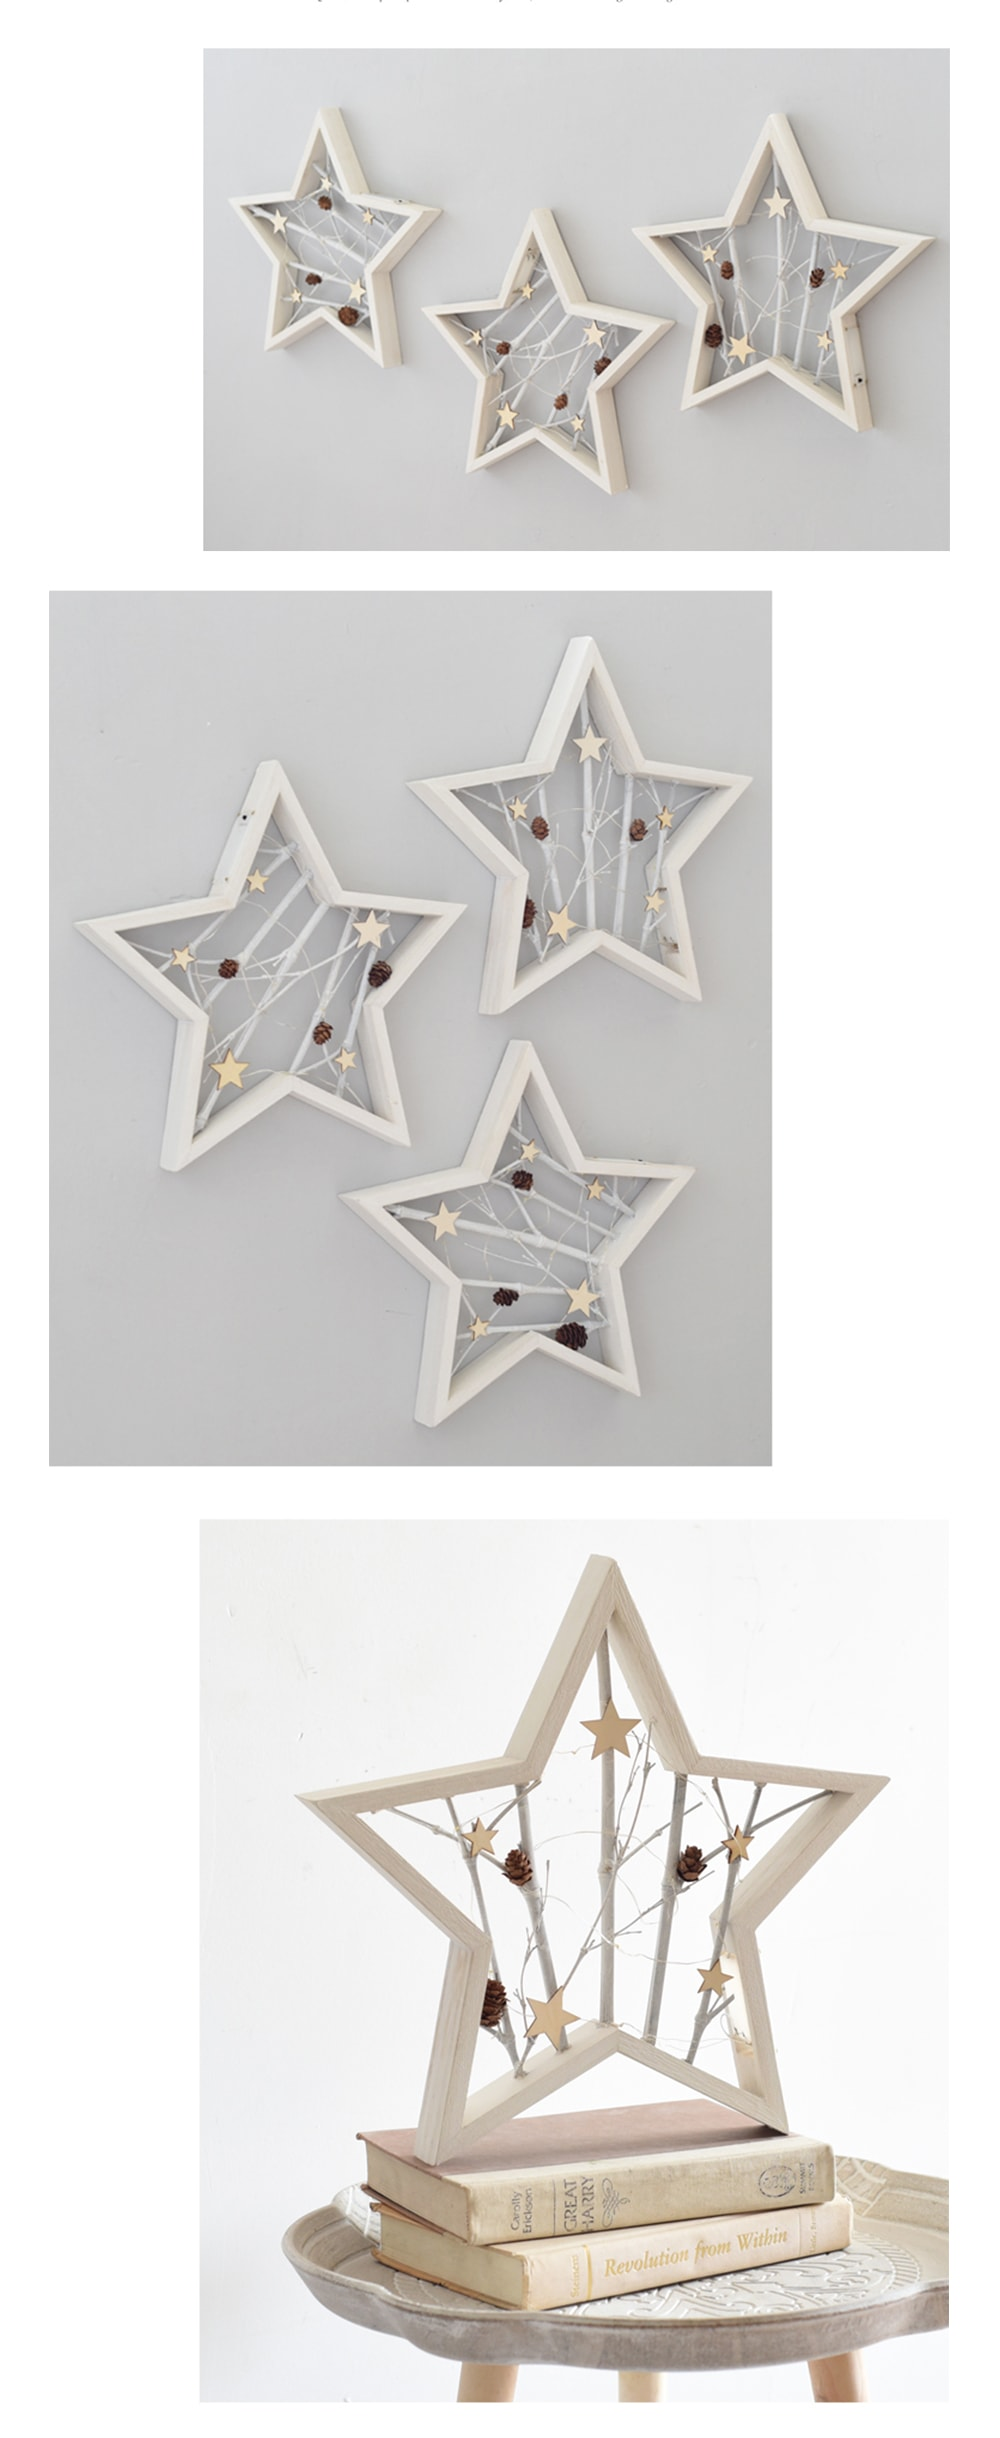 Star Shaped Wall Decor with LED Light Glowing Holiday Charm